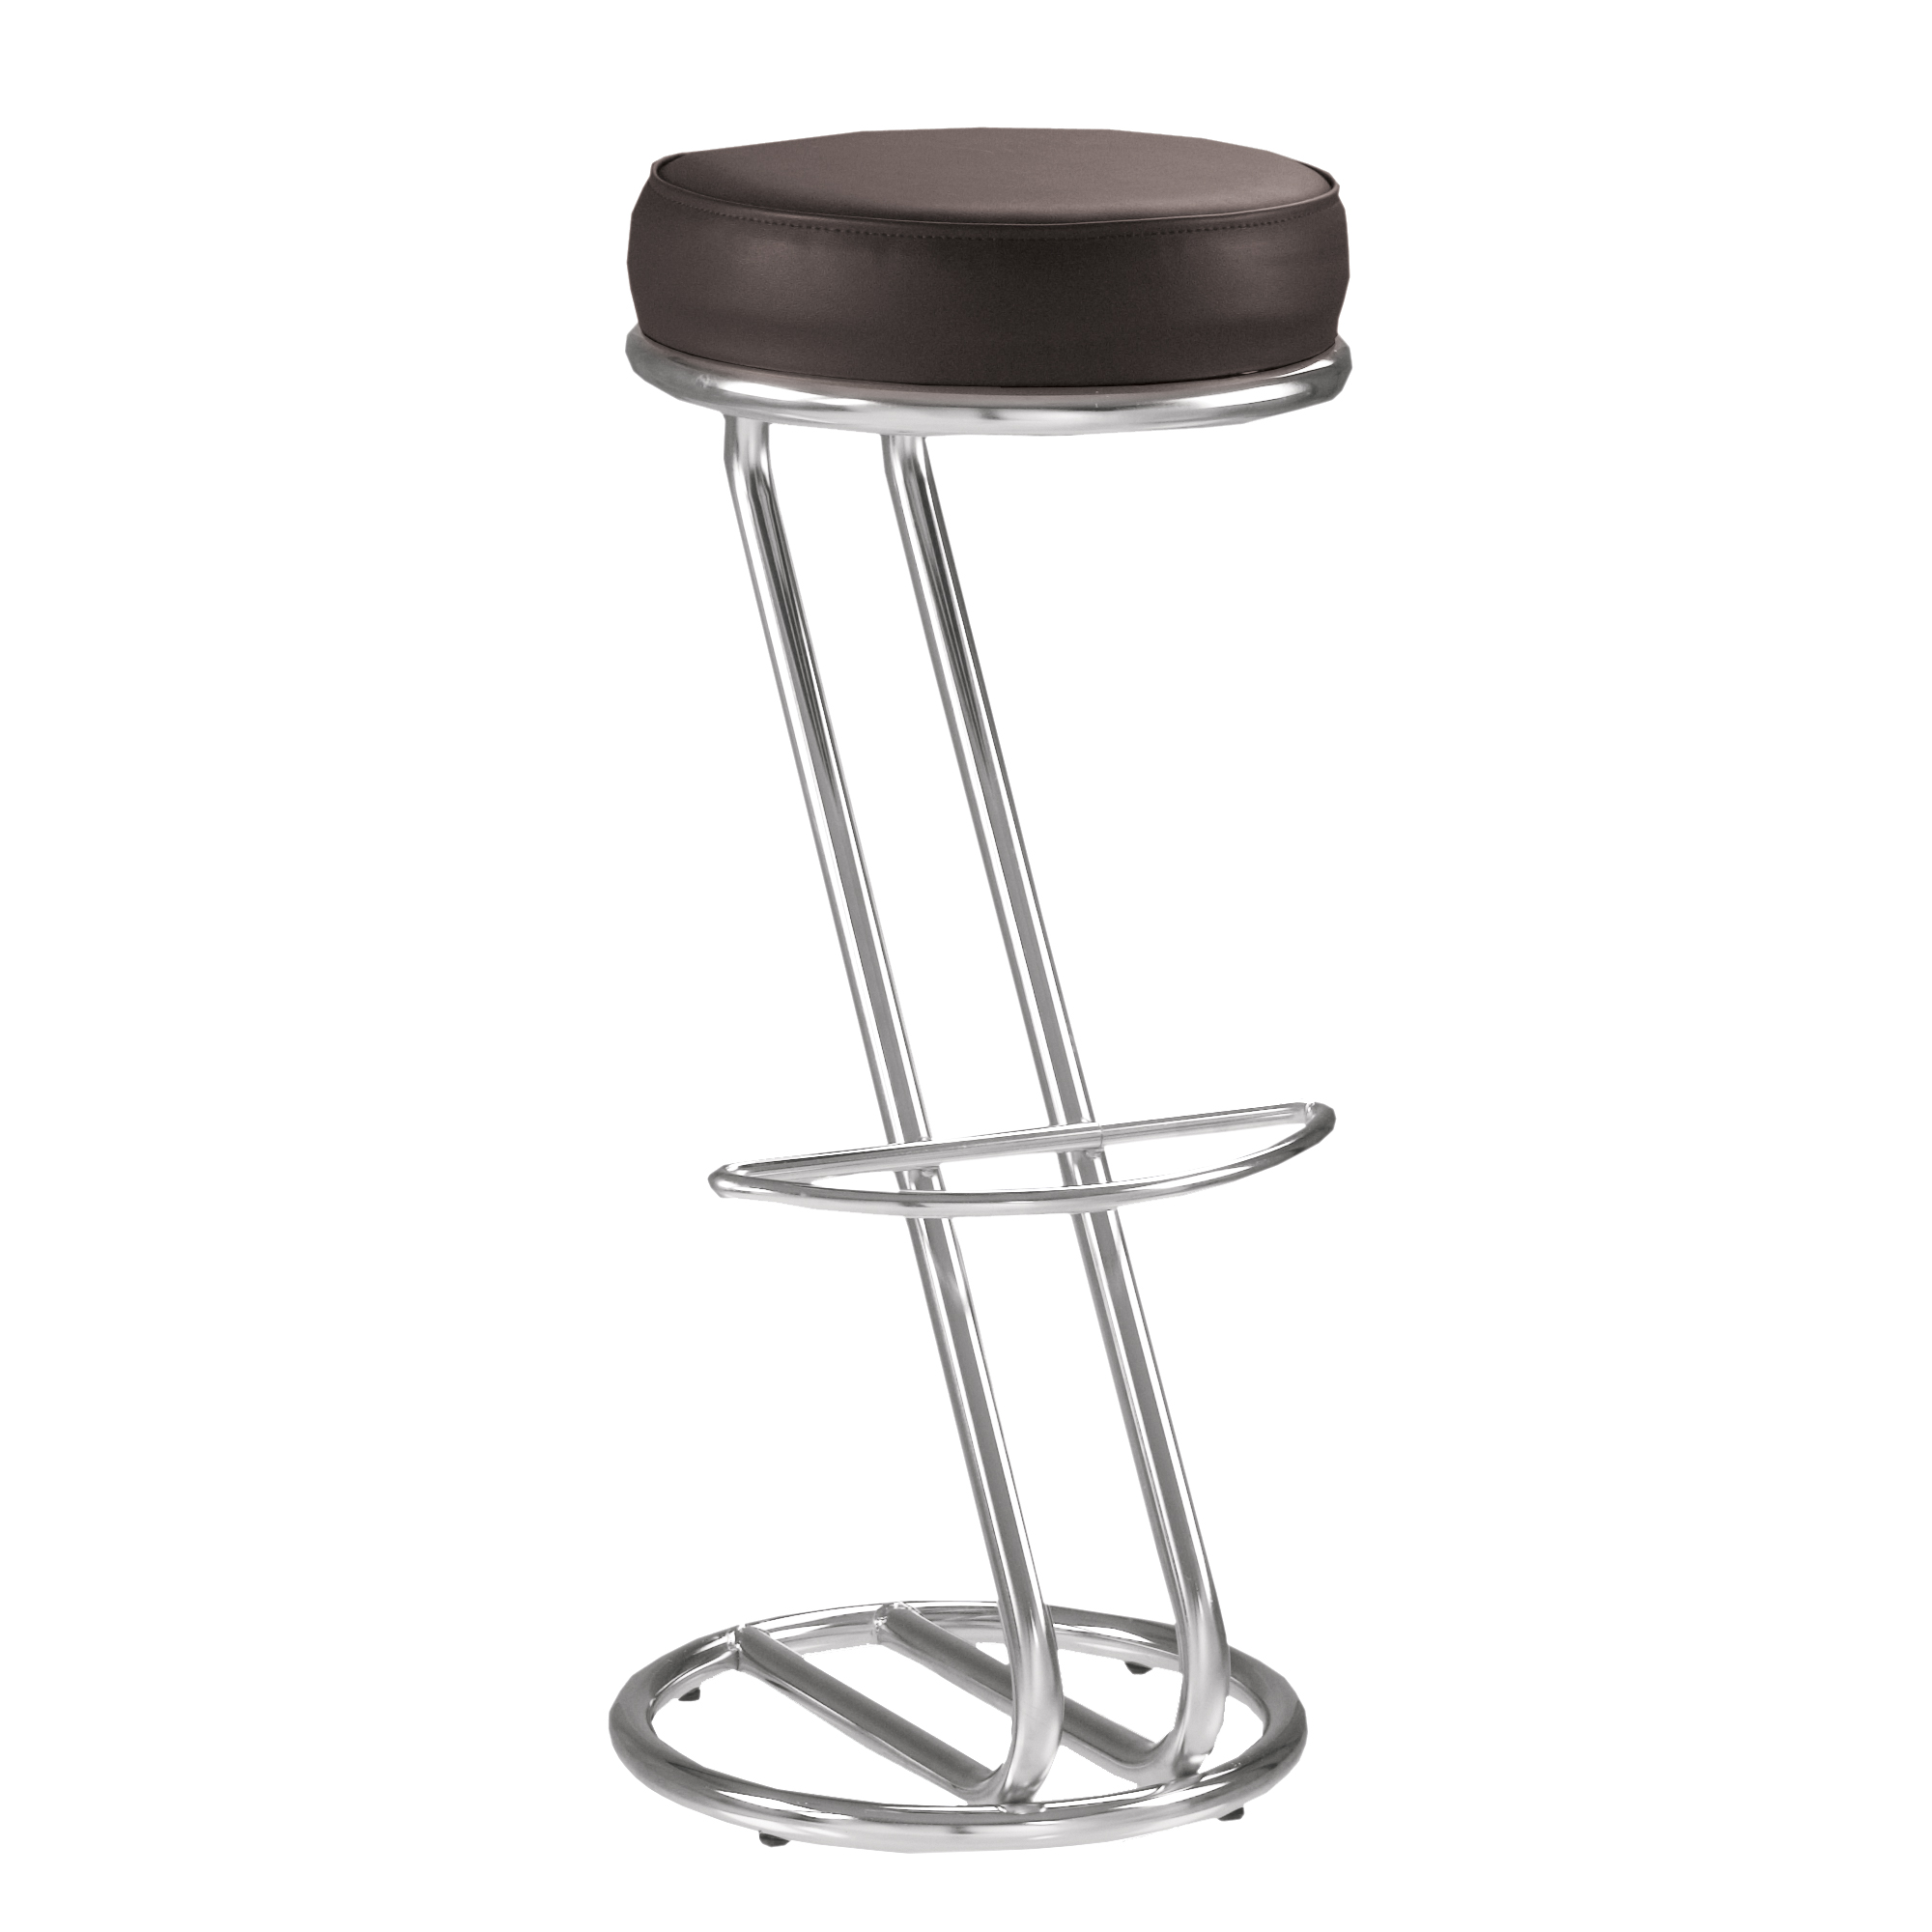 Siege De Bar Lot De 2 Tabourets De Bar Chaise Haute De Bar Zeta Noir